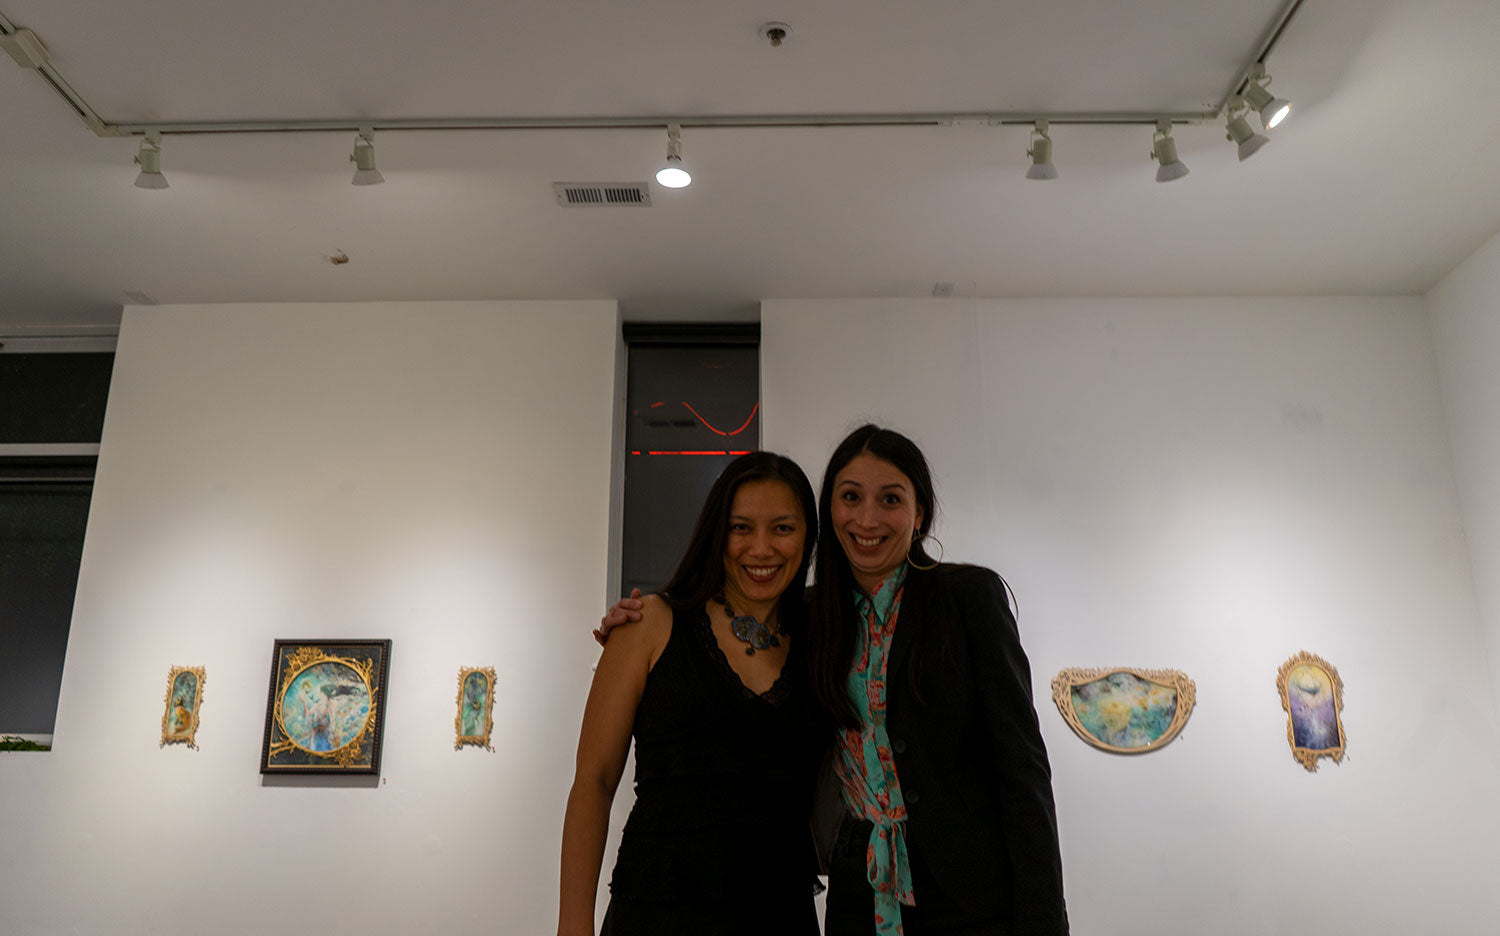 Stephanie Law and Kim Larson